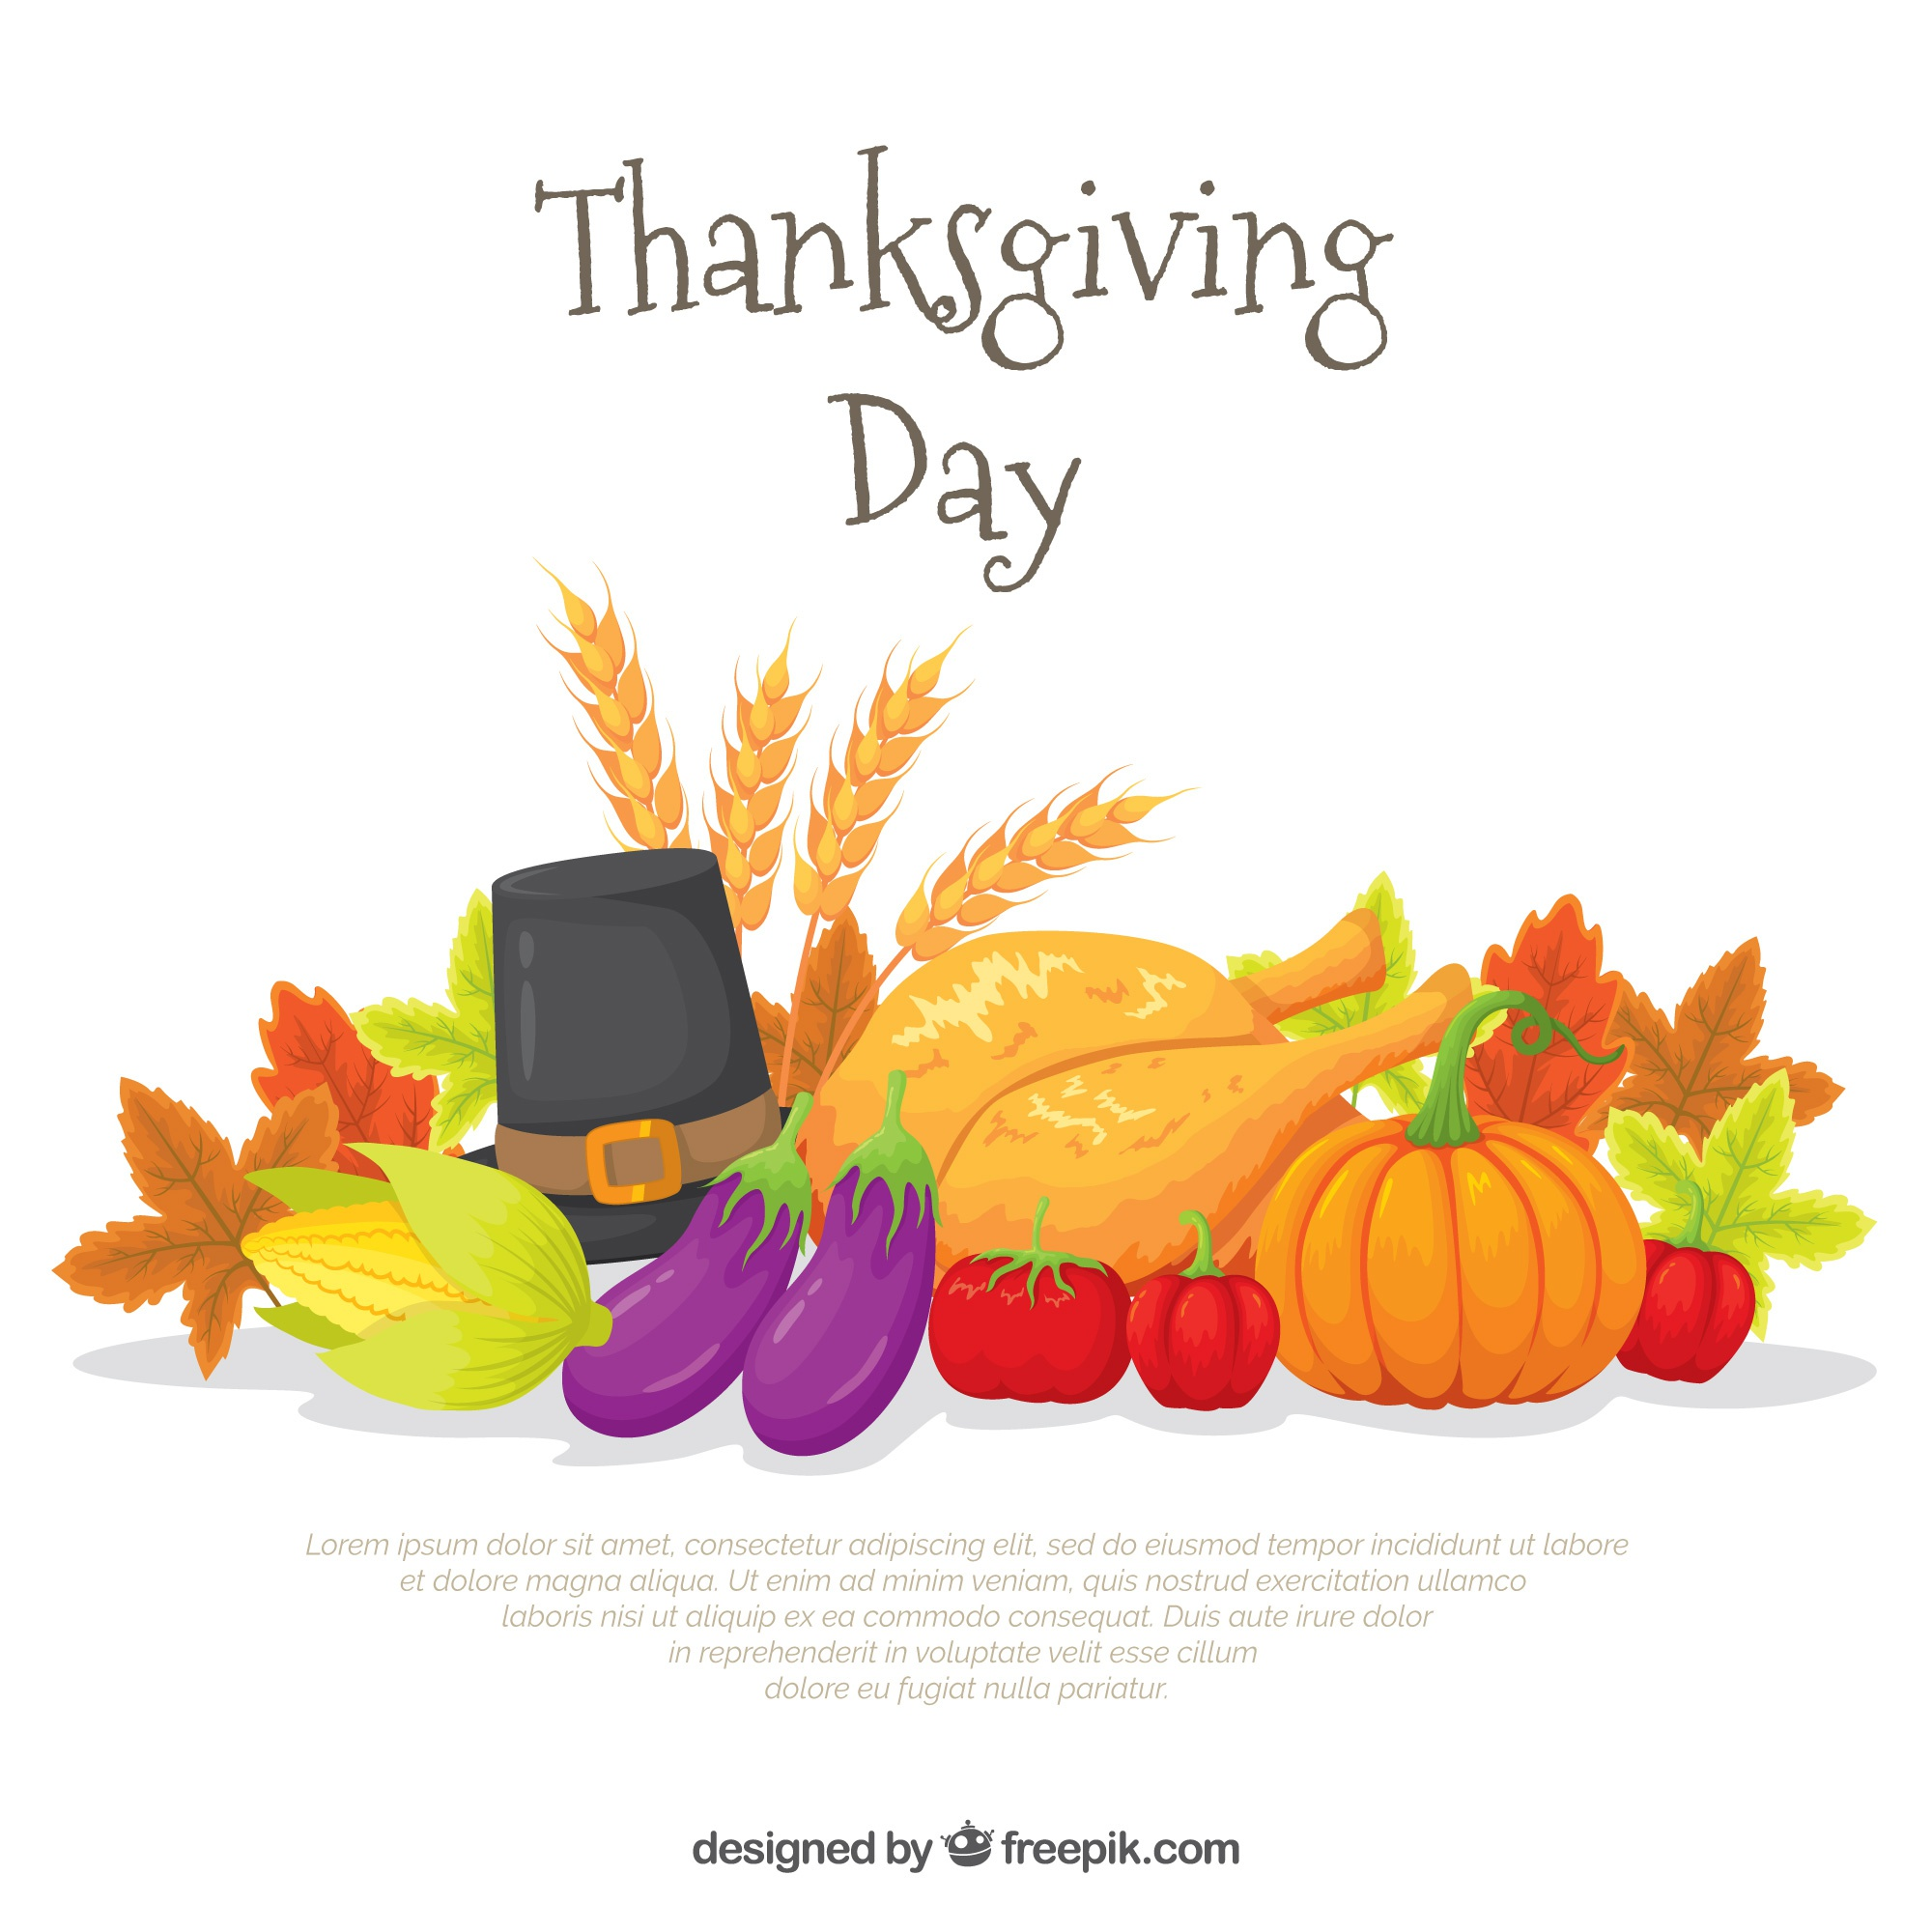 Background of natural elements of thanksgiving celebration